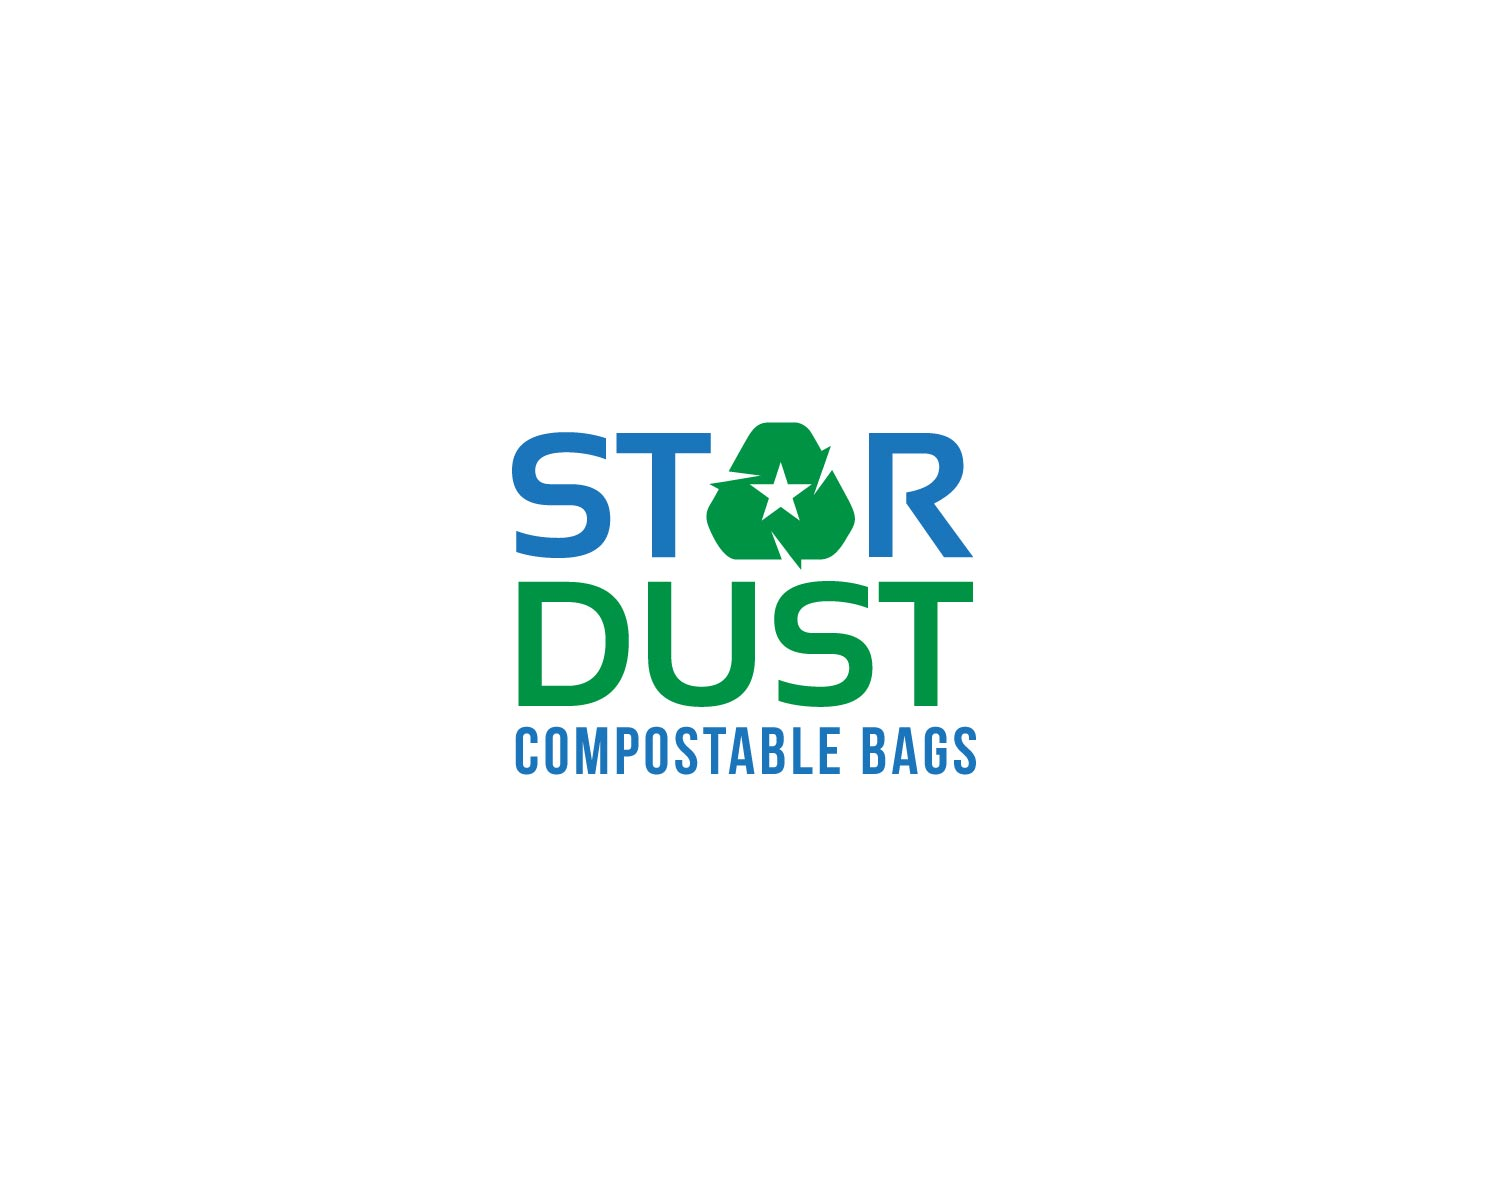 Modern, Personable, Sustainability Logo Design for Stardust.